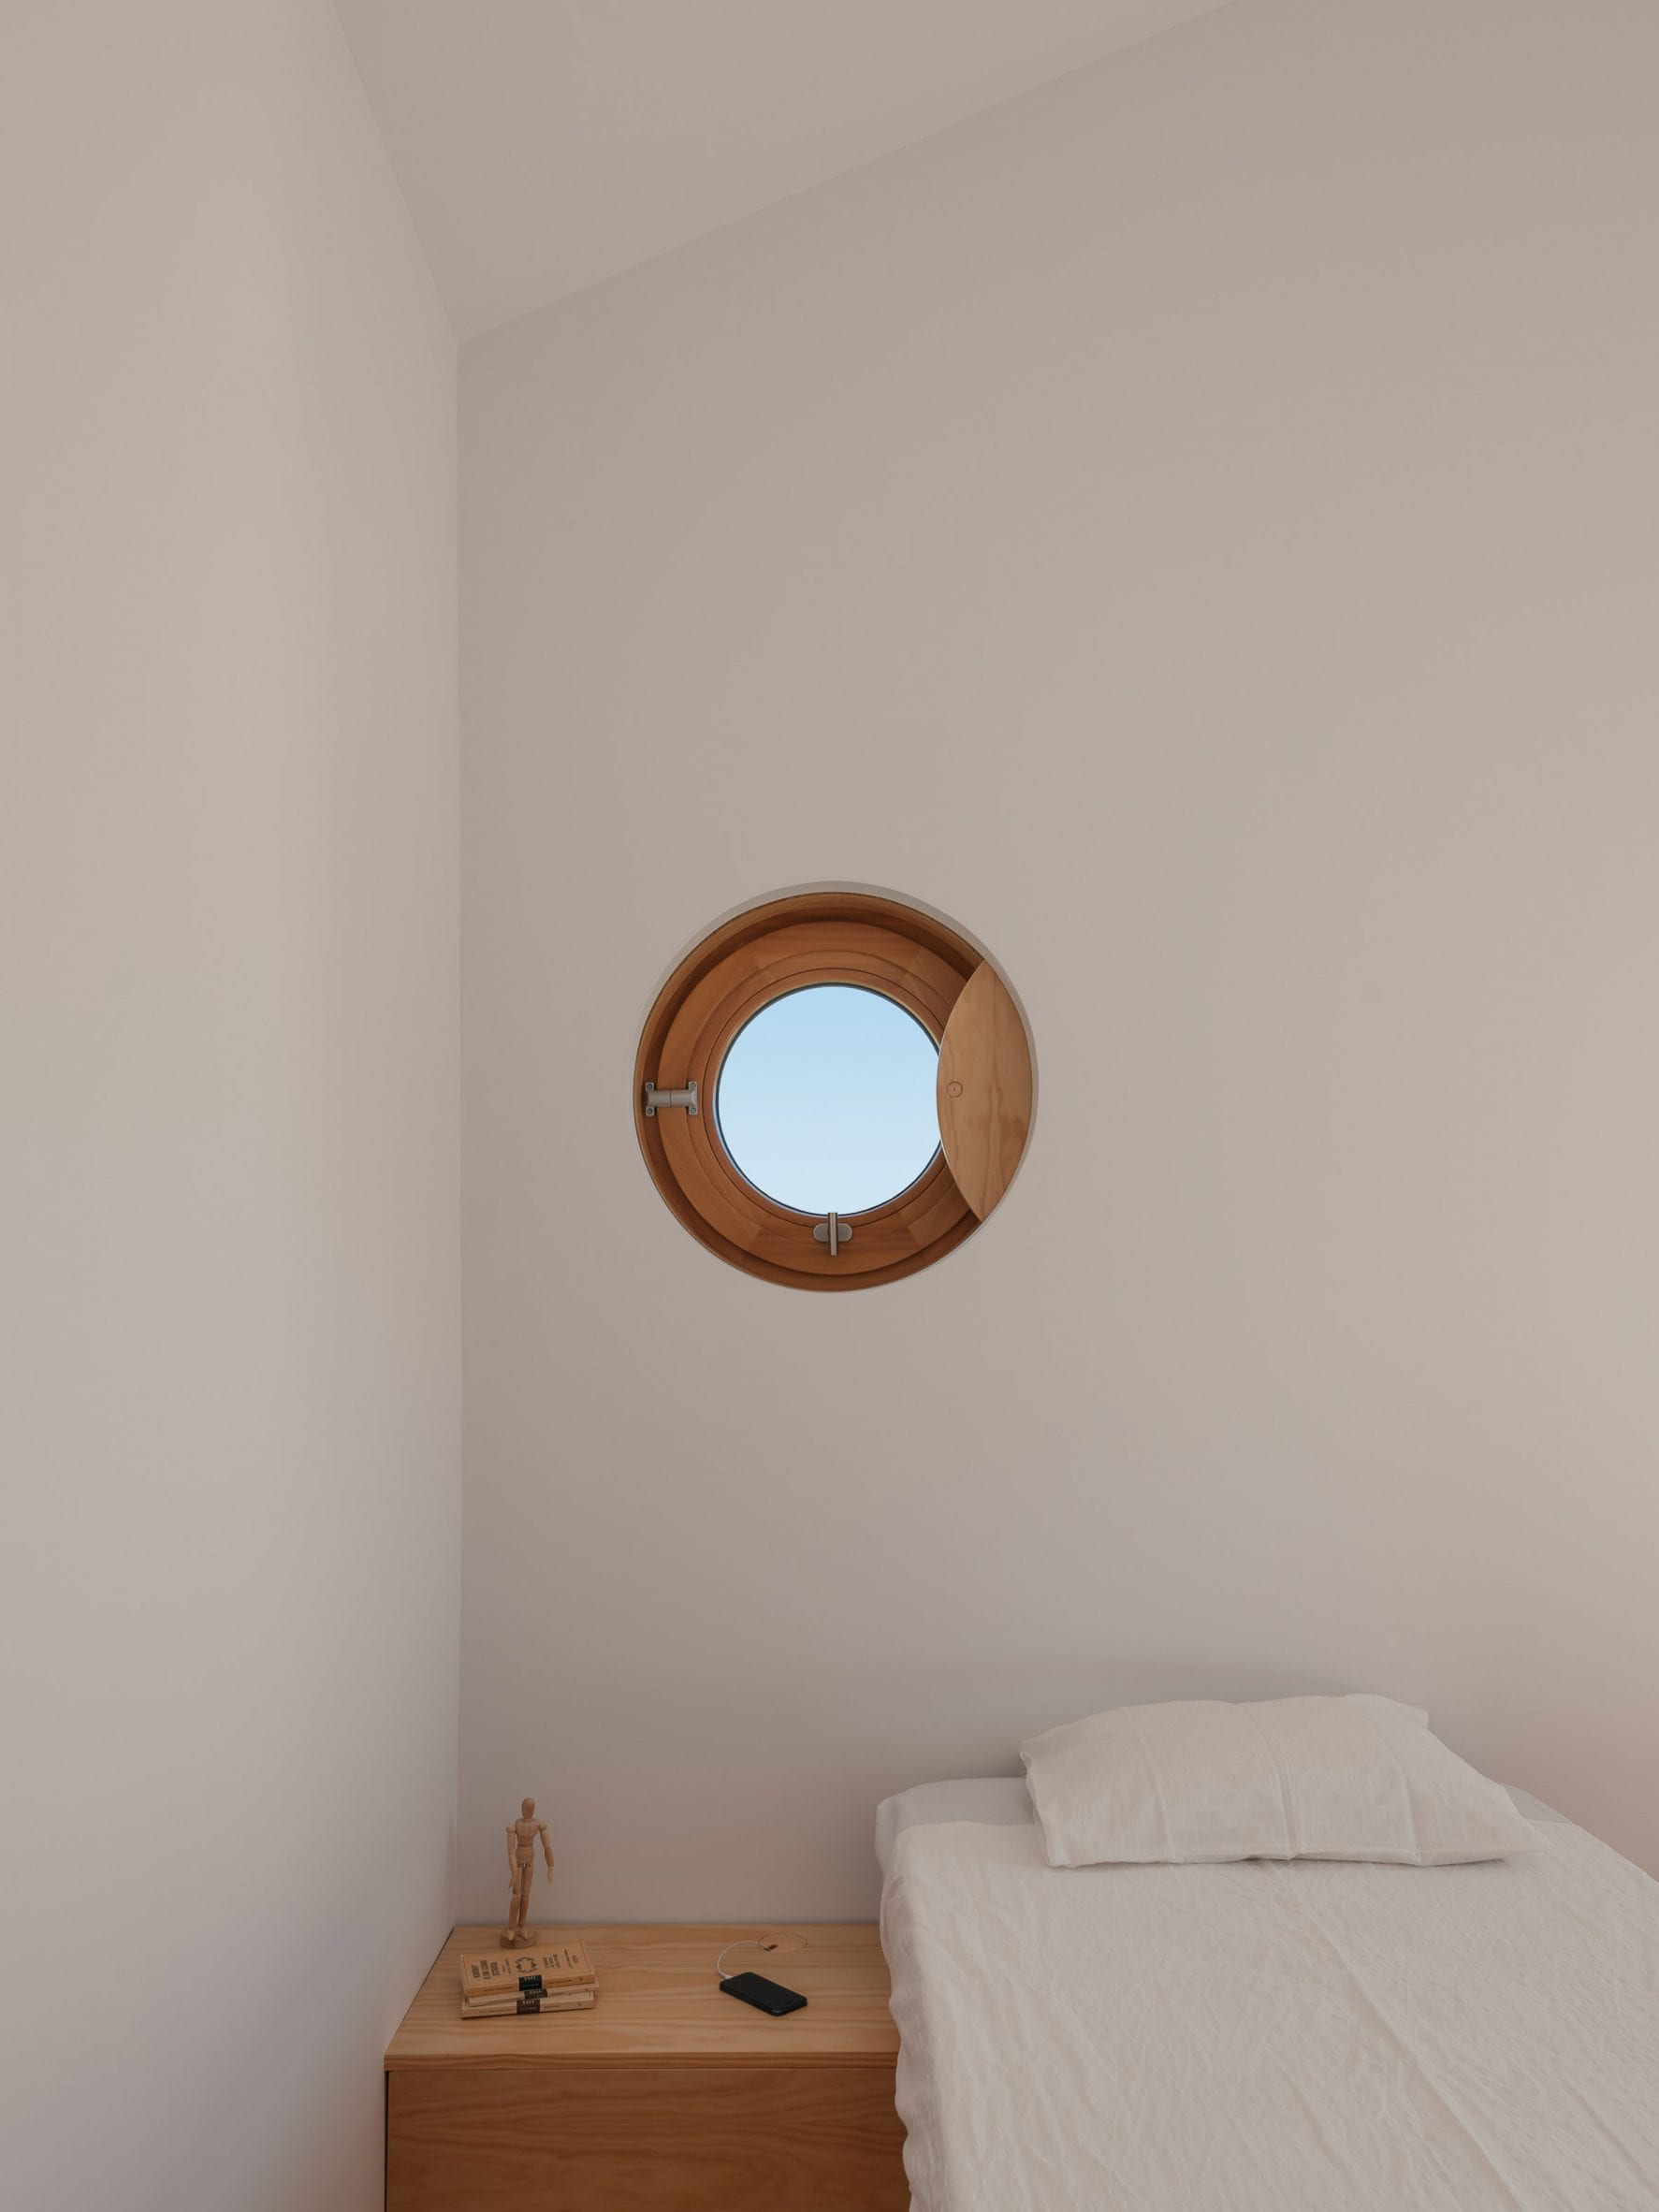 Porthole window in Puppeteers House by REDO Architects